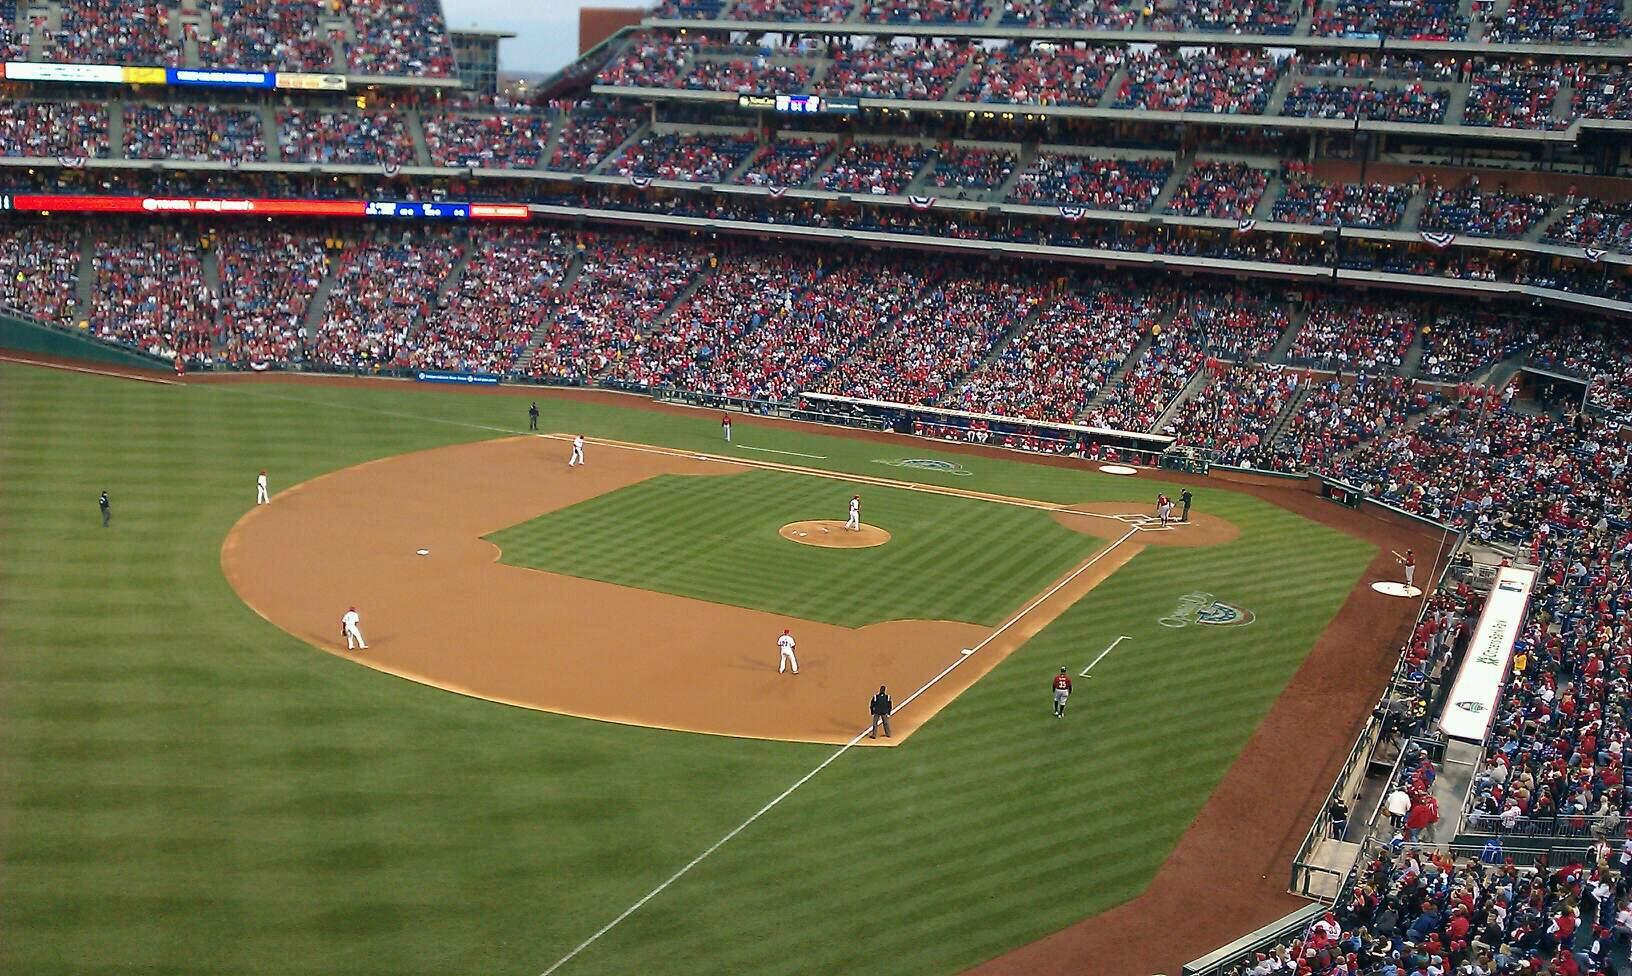 Citizens Bank Park Section 332 Row 1 Seat 12